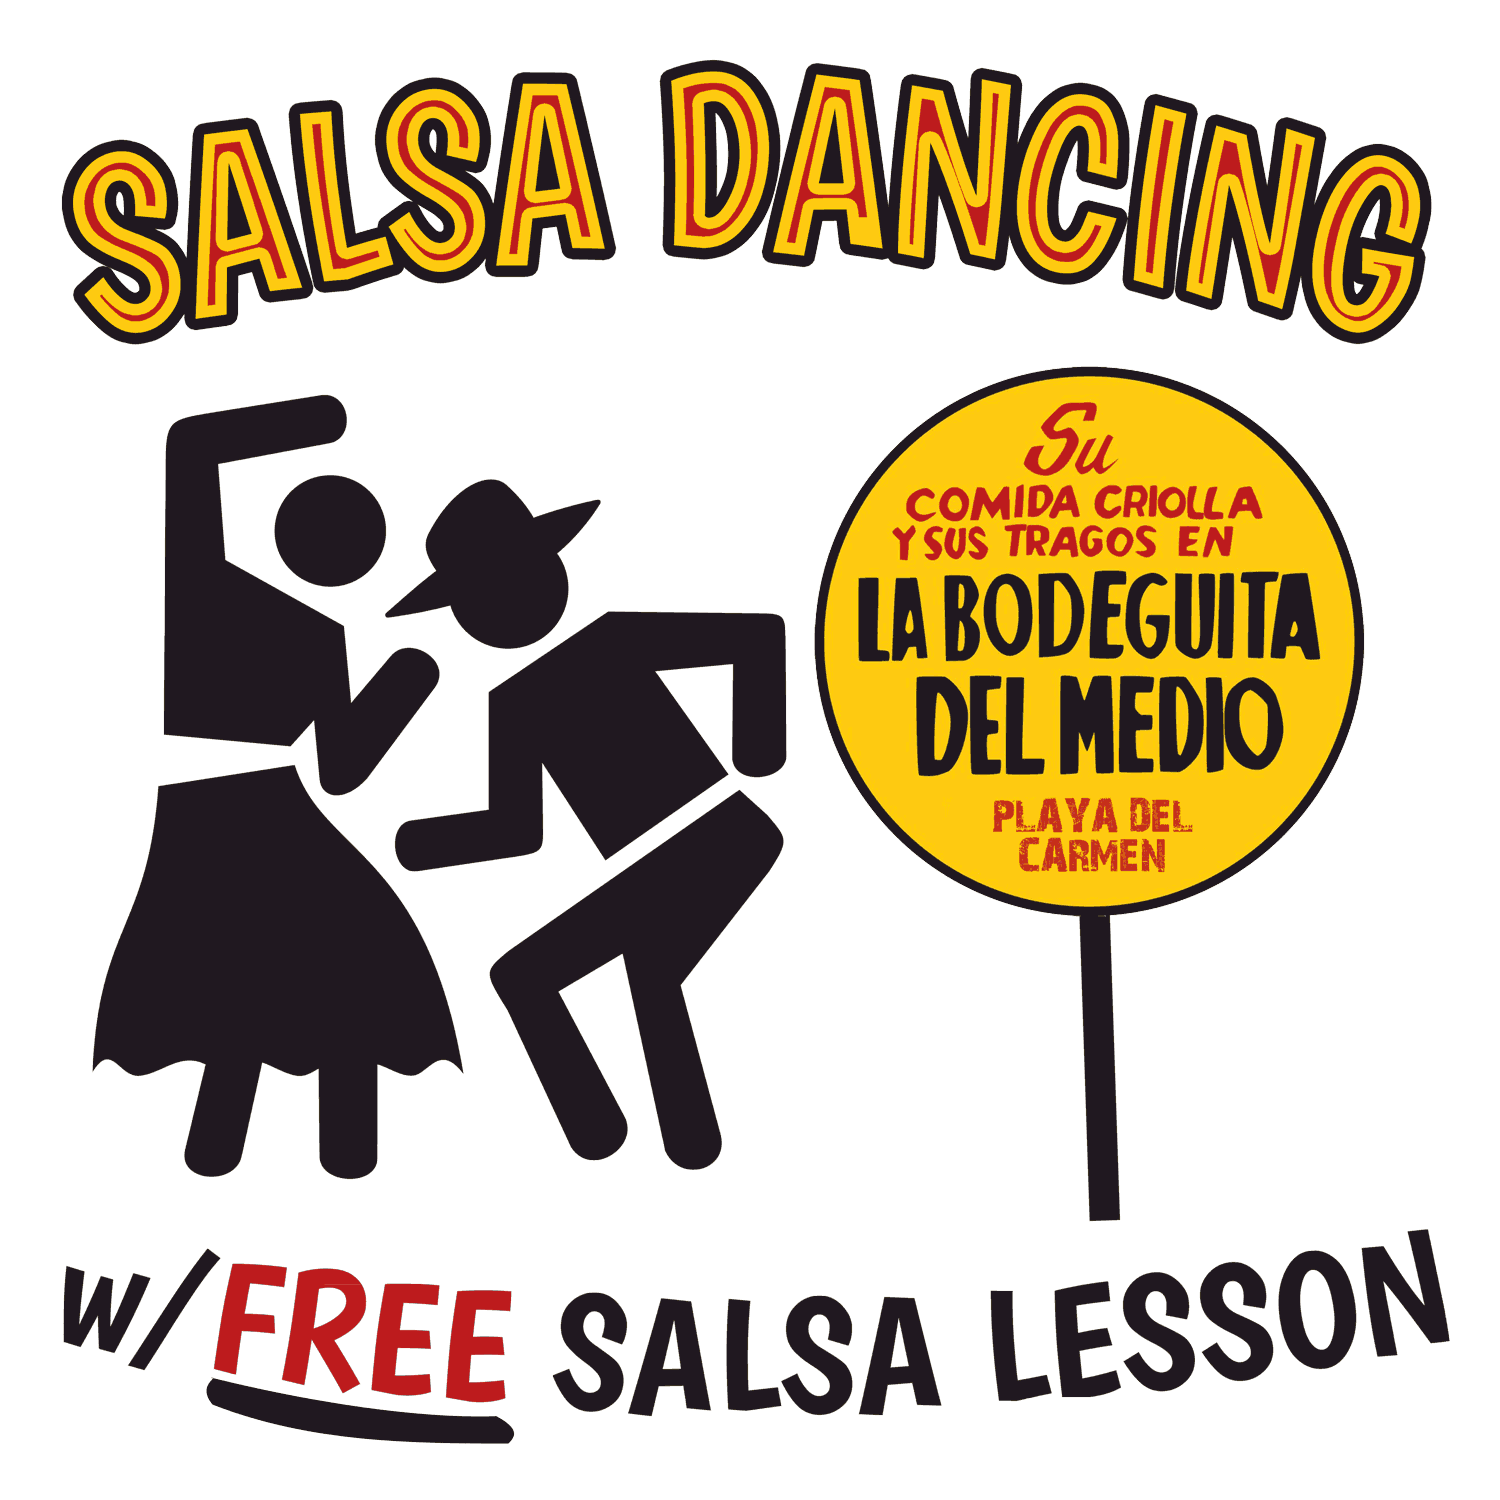 Free Salsa lessons on Thursday nights!